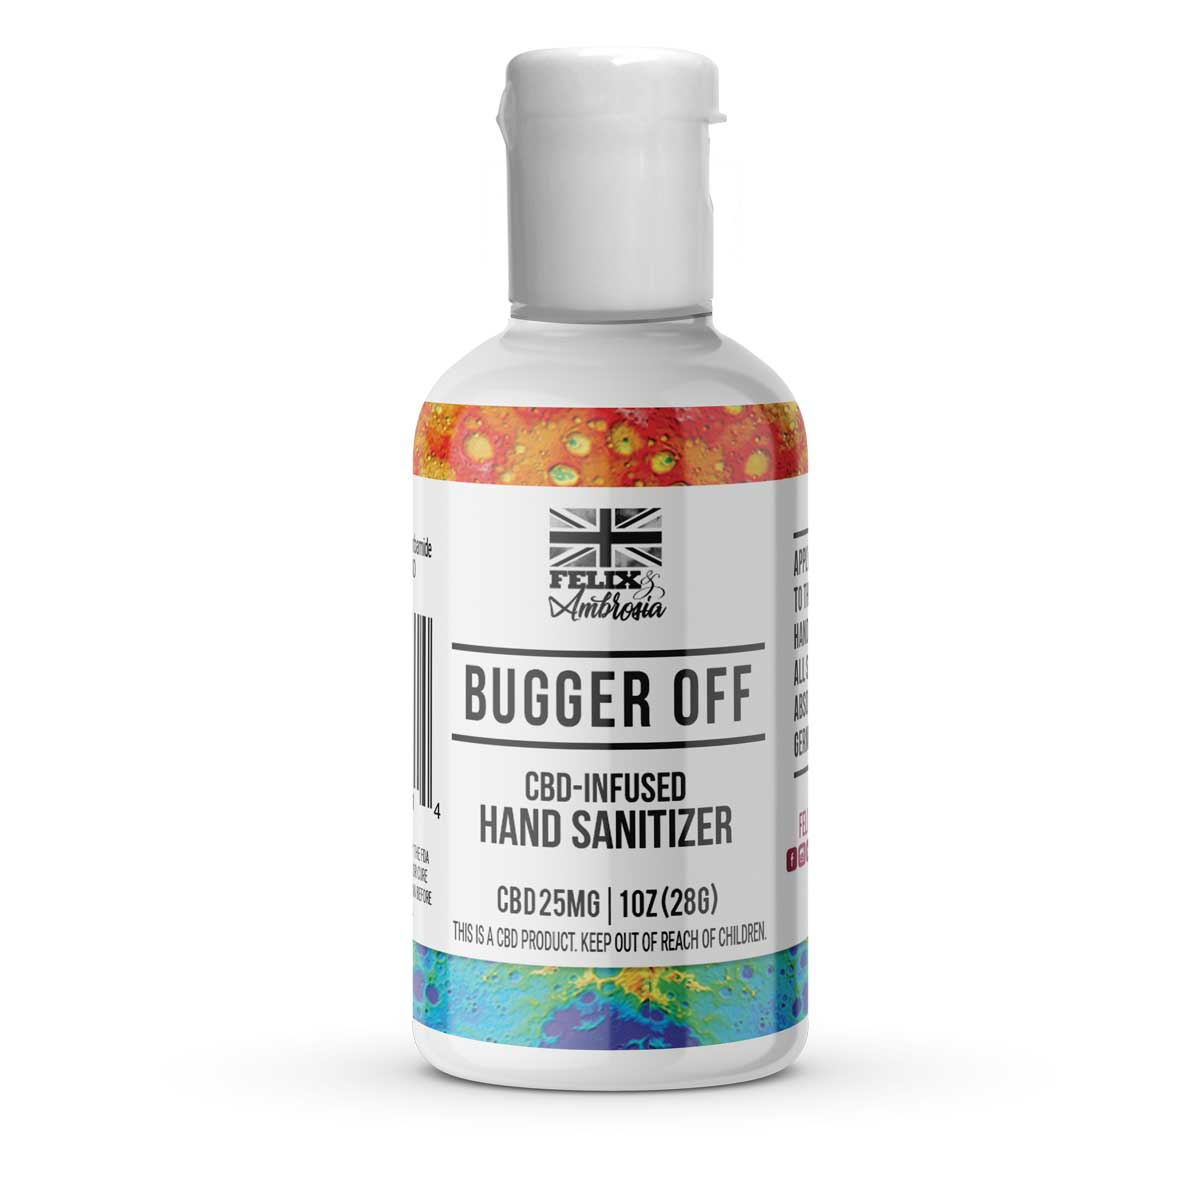 Bugger Off CBD Hand Sanitizer